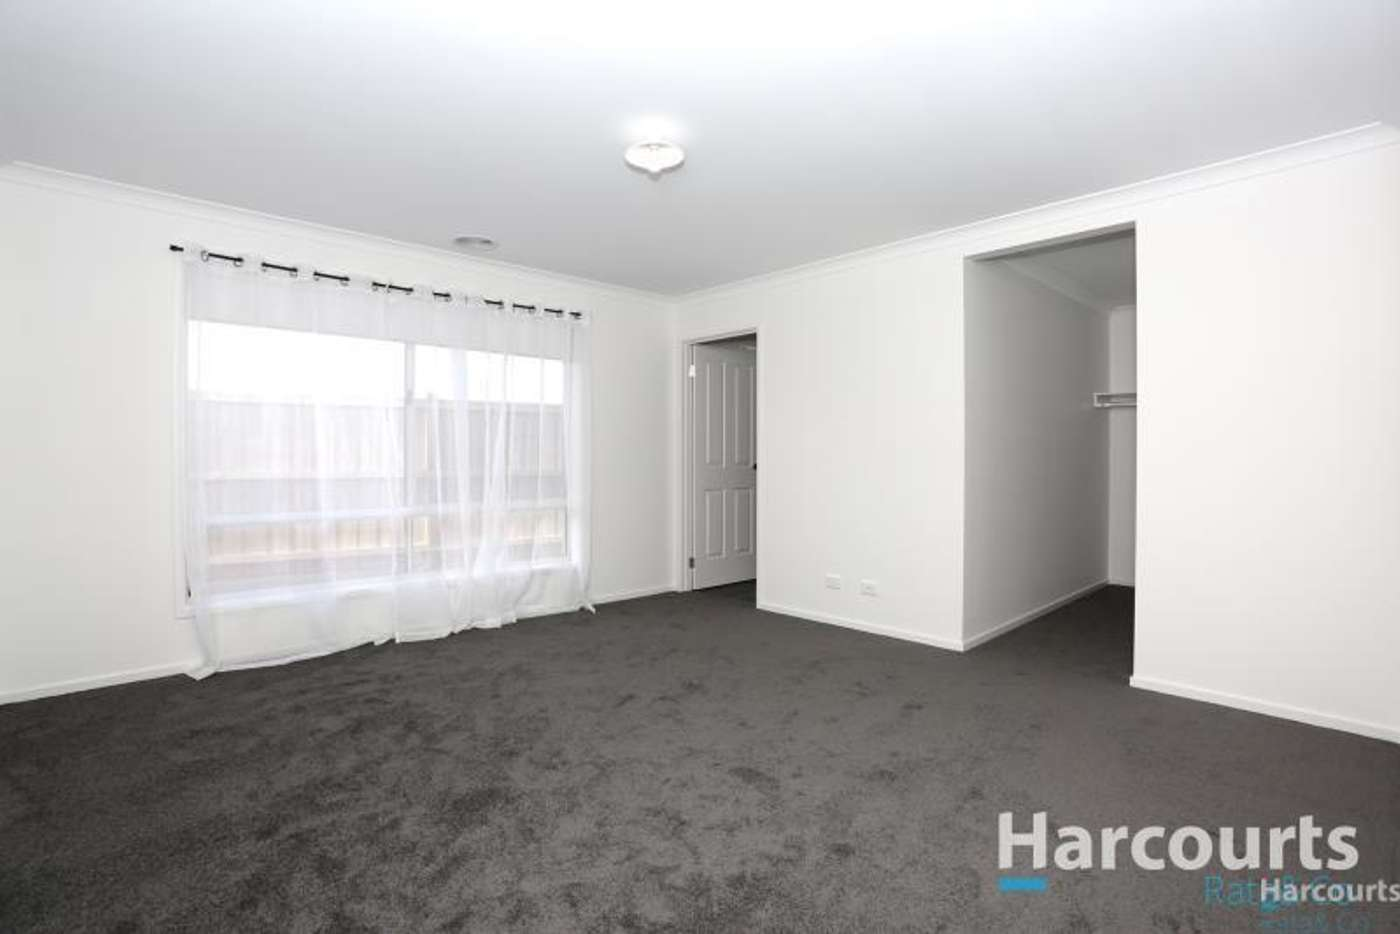 Fifth view of Homely house listing, 30 Kempen Road, Doreen VIC 3754